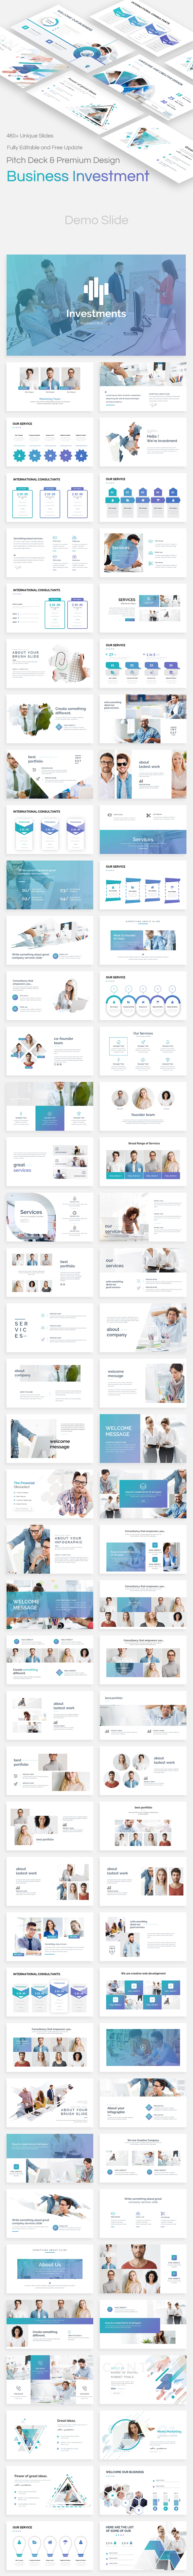 Business Investments Pitch Deck Powerpoint Template